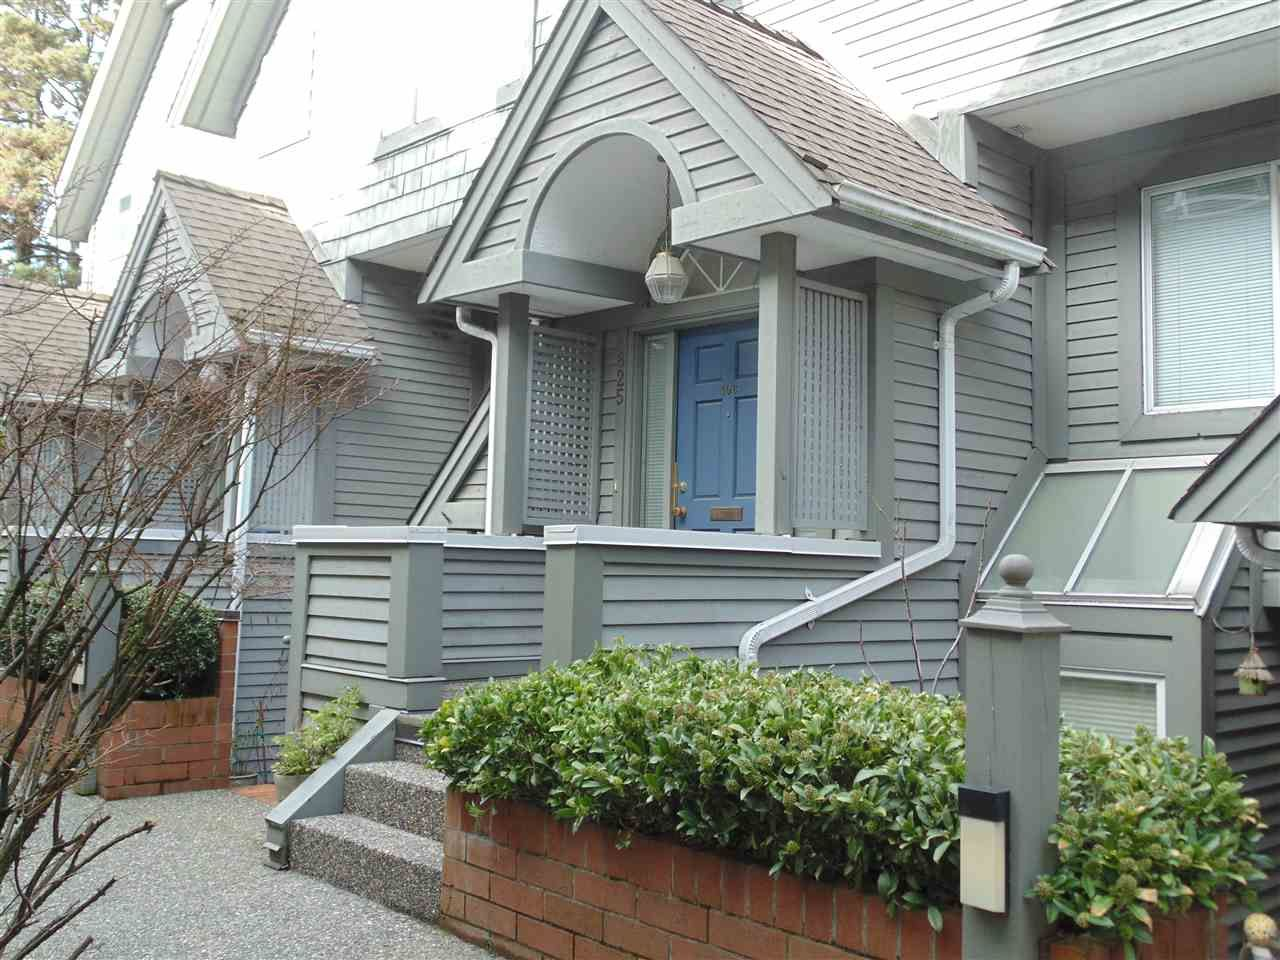 Main Photo: 106 825 W 7TH Avenue in Vancouver: Fairview VW Townhouse for sale (Vancouver West)  : MLS®# R2438221